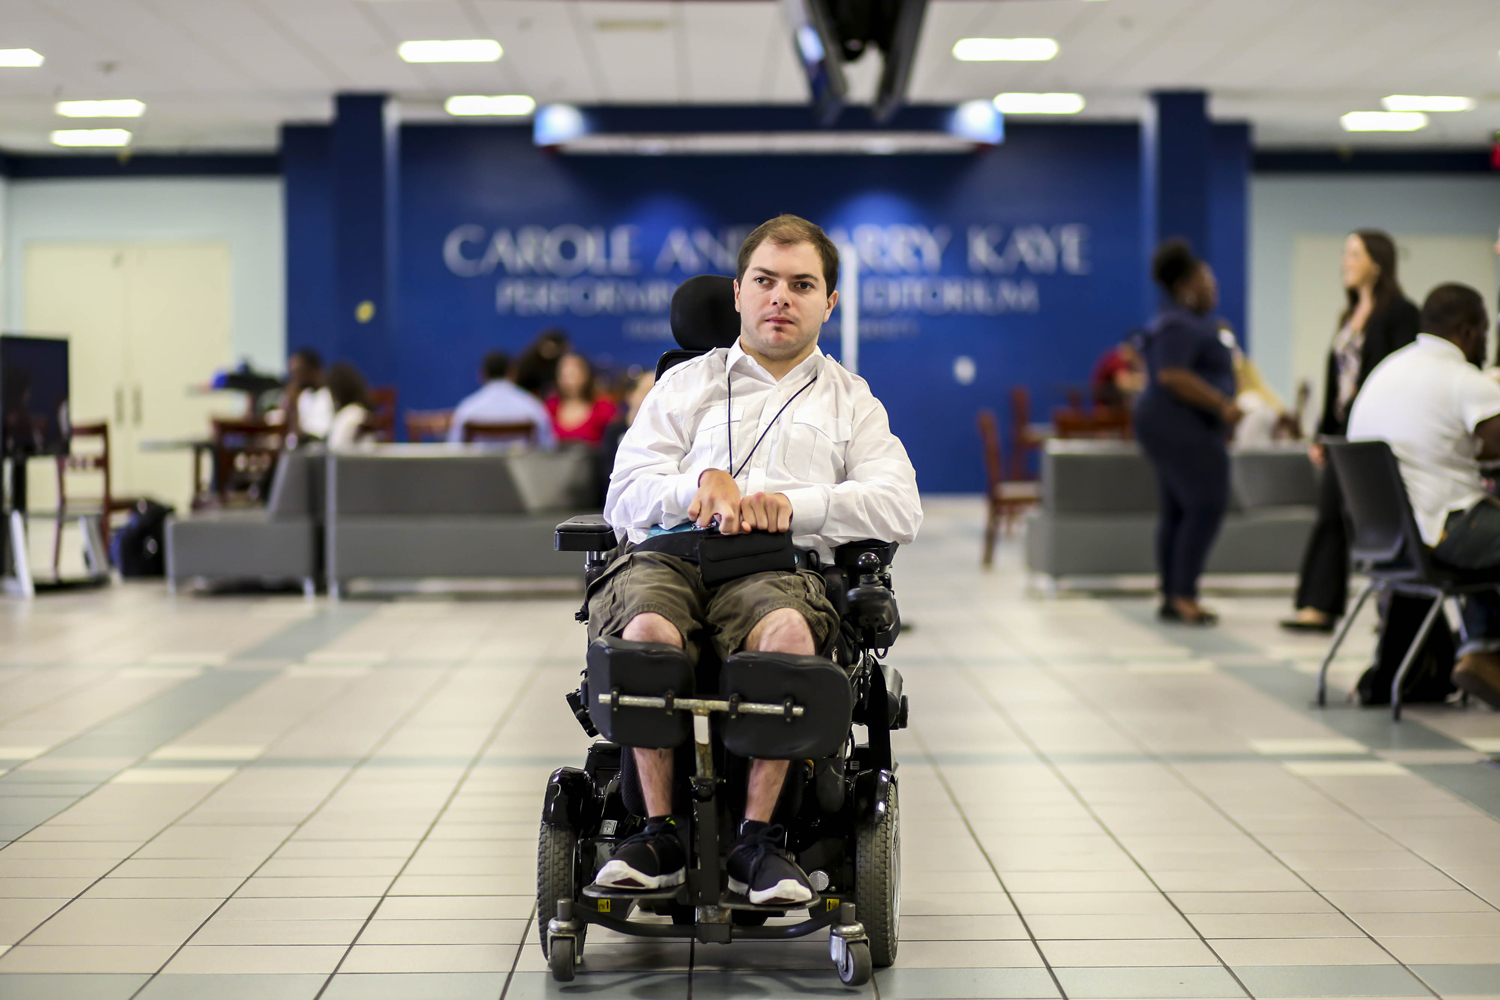 The wheelchair specialized for Garrett Mayersohn allows him to have access to the Student Union. Alexander Rodriguez | Contributing Photographer